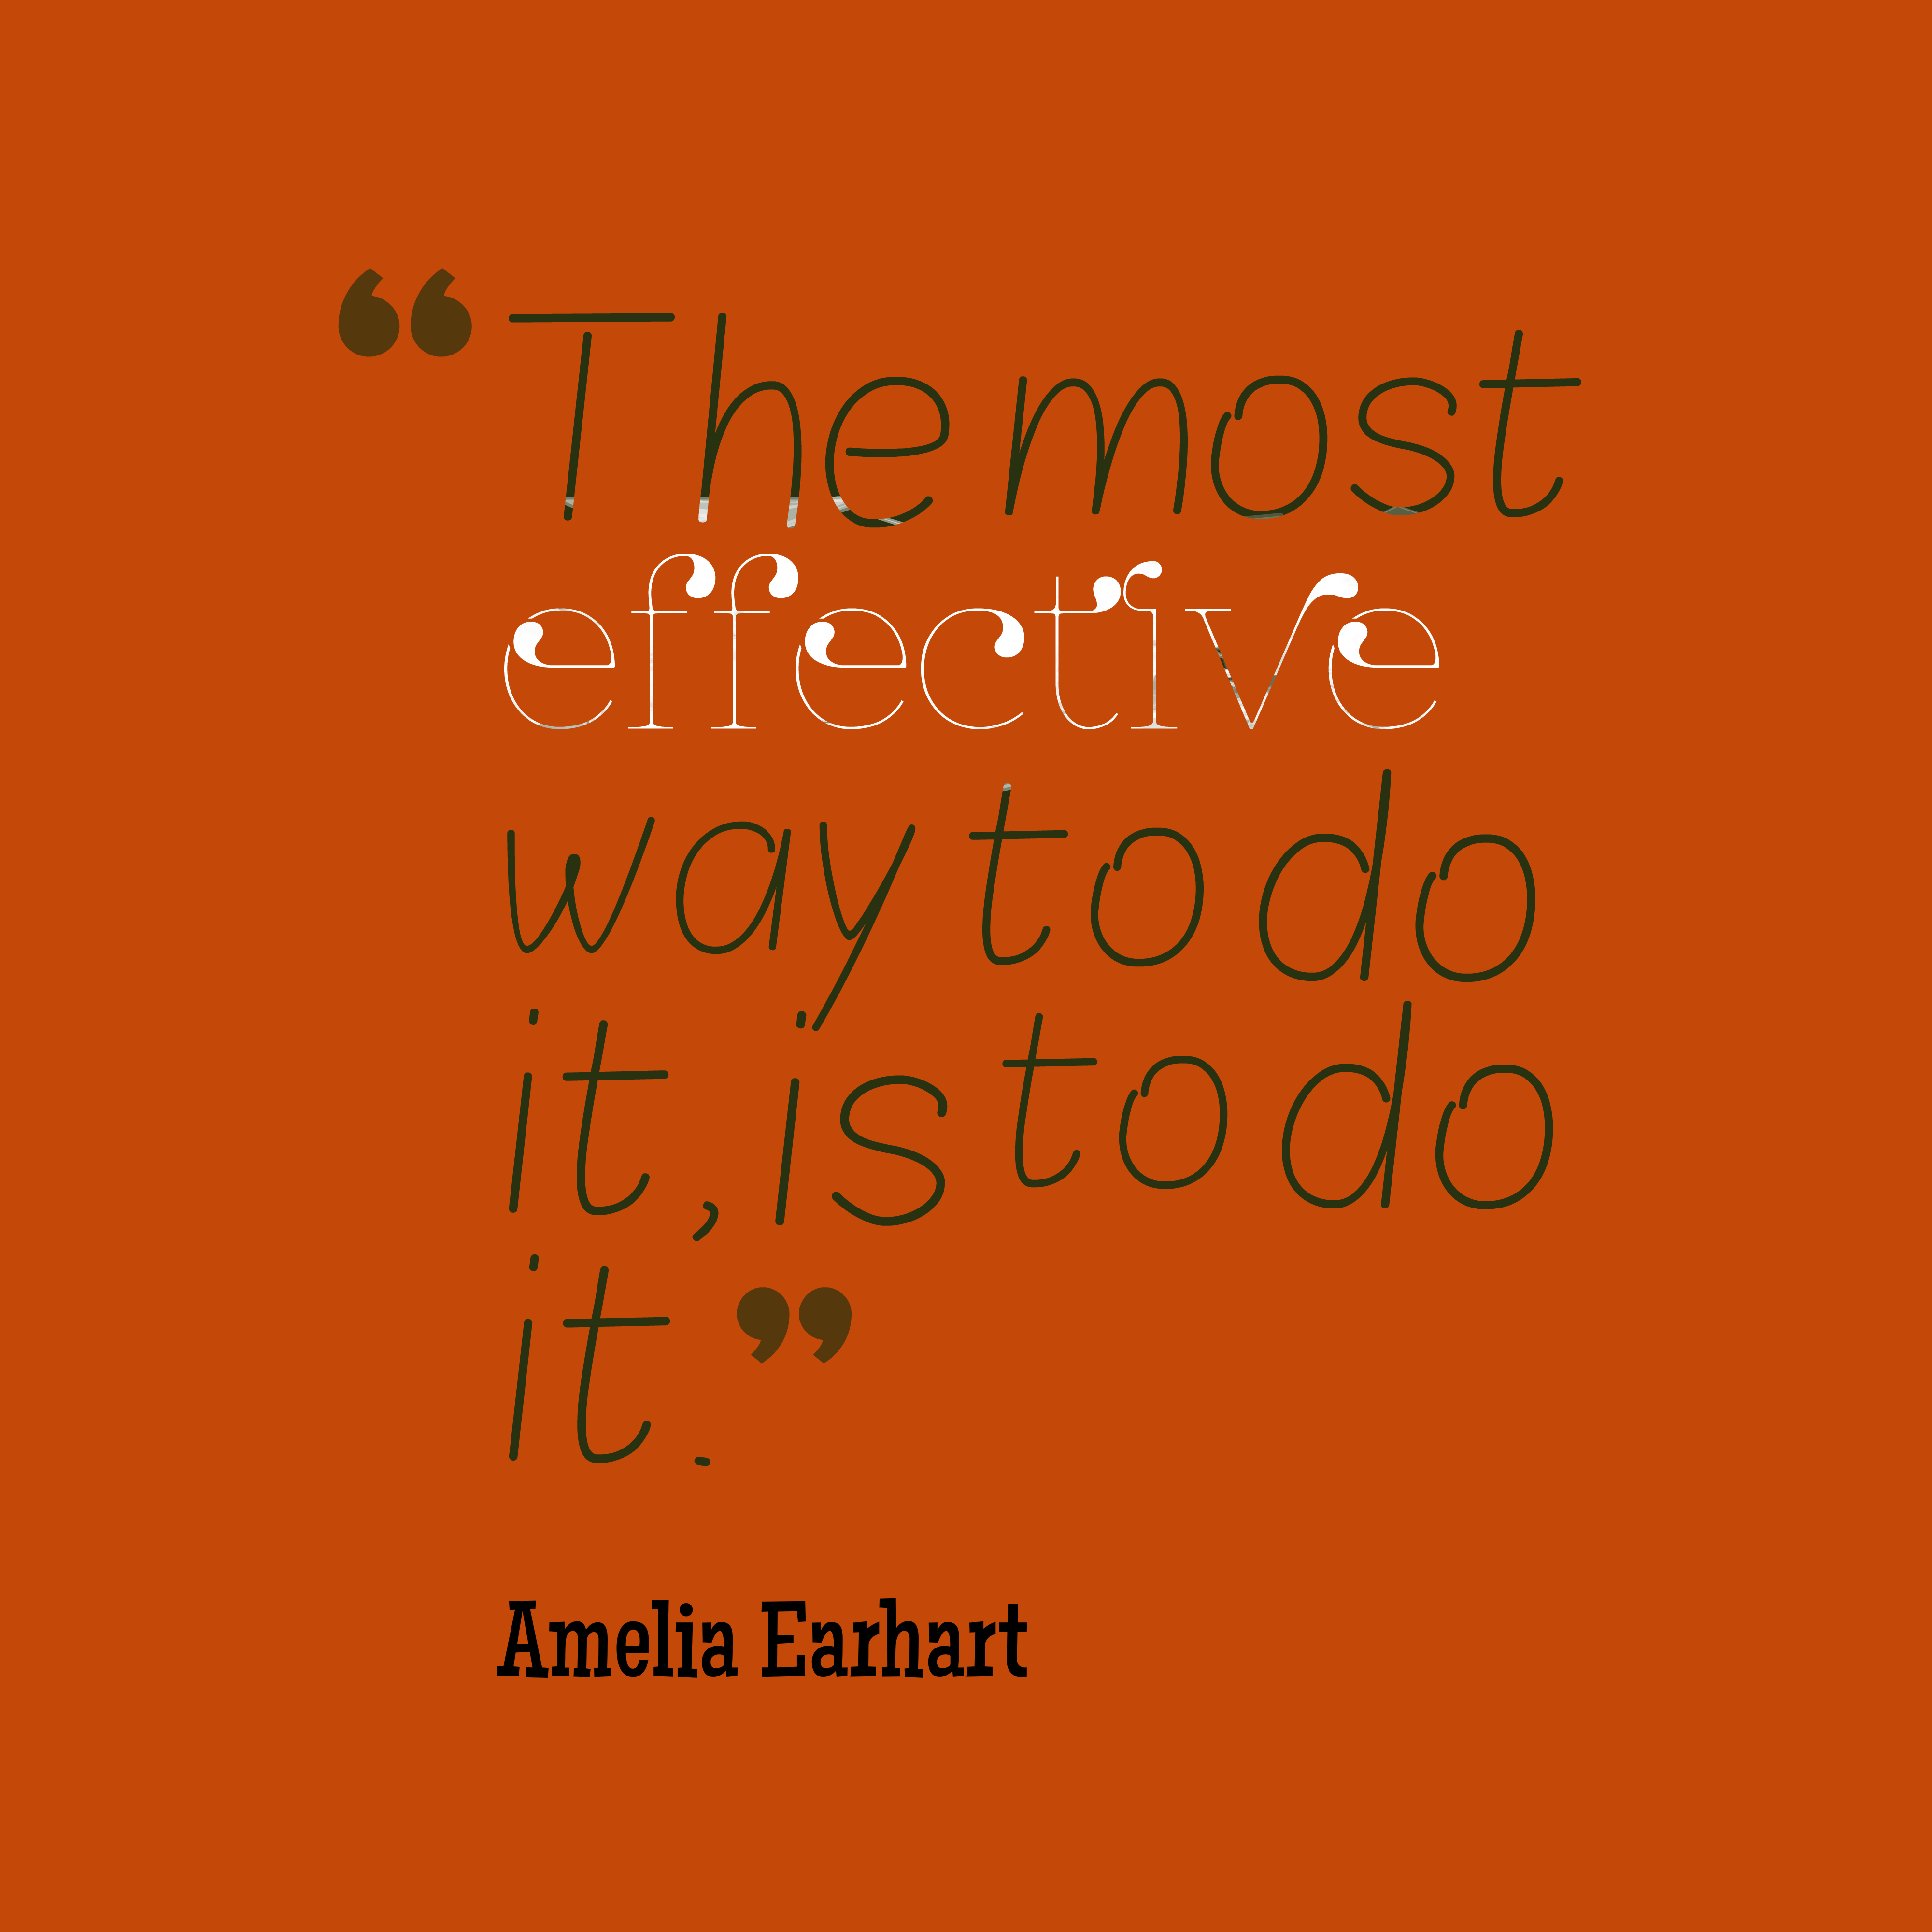 Quotes image of The most effective way to do it, is to do it.